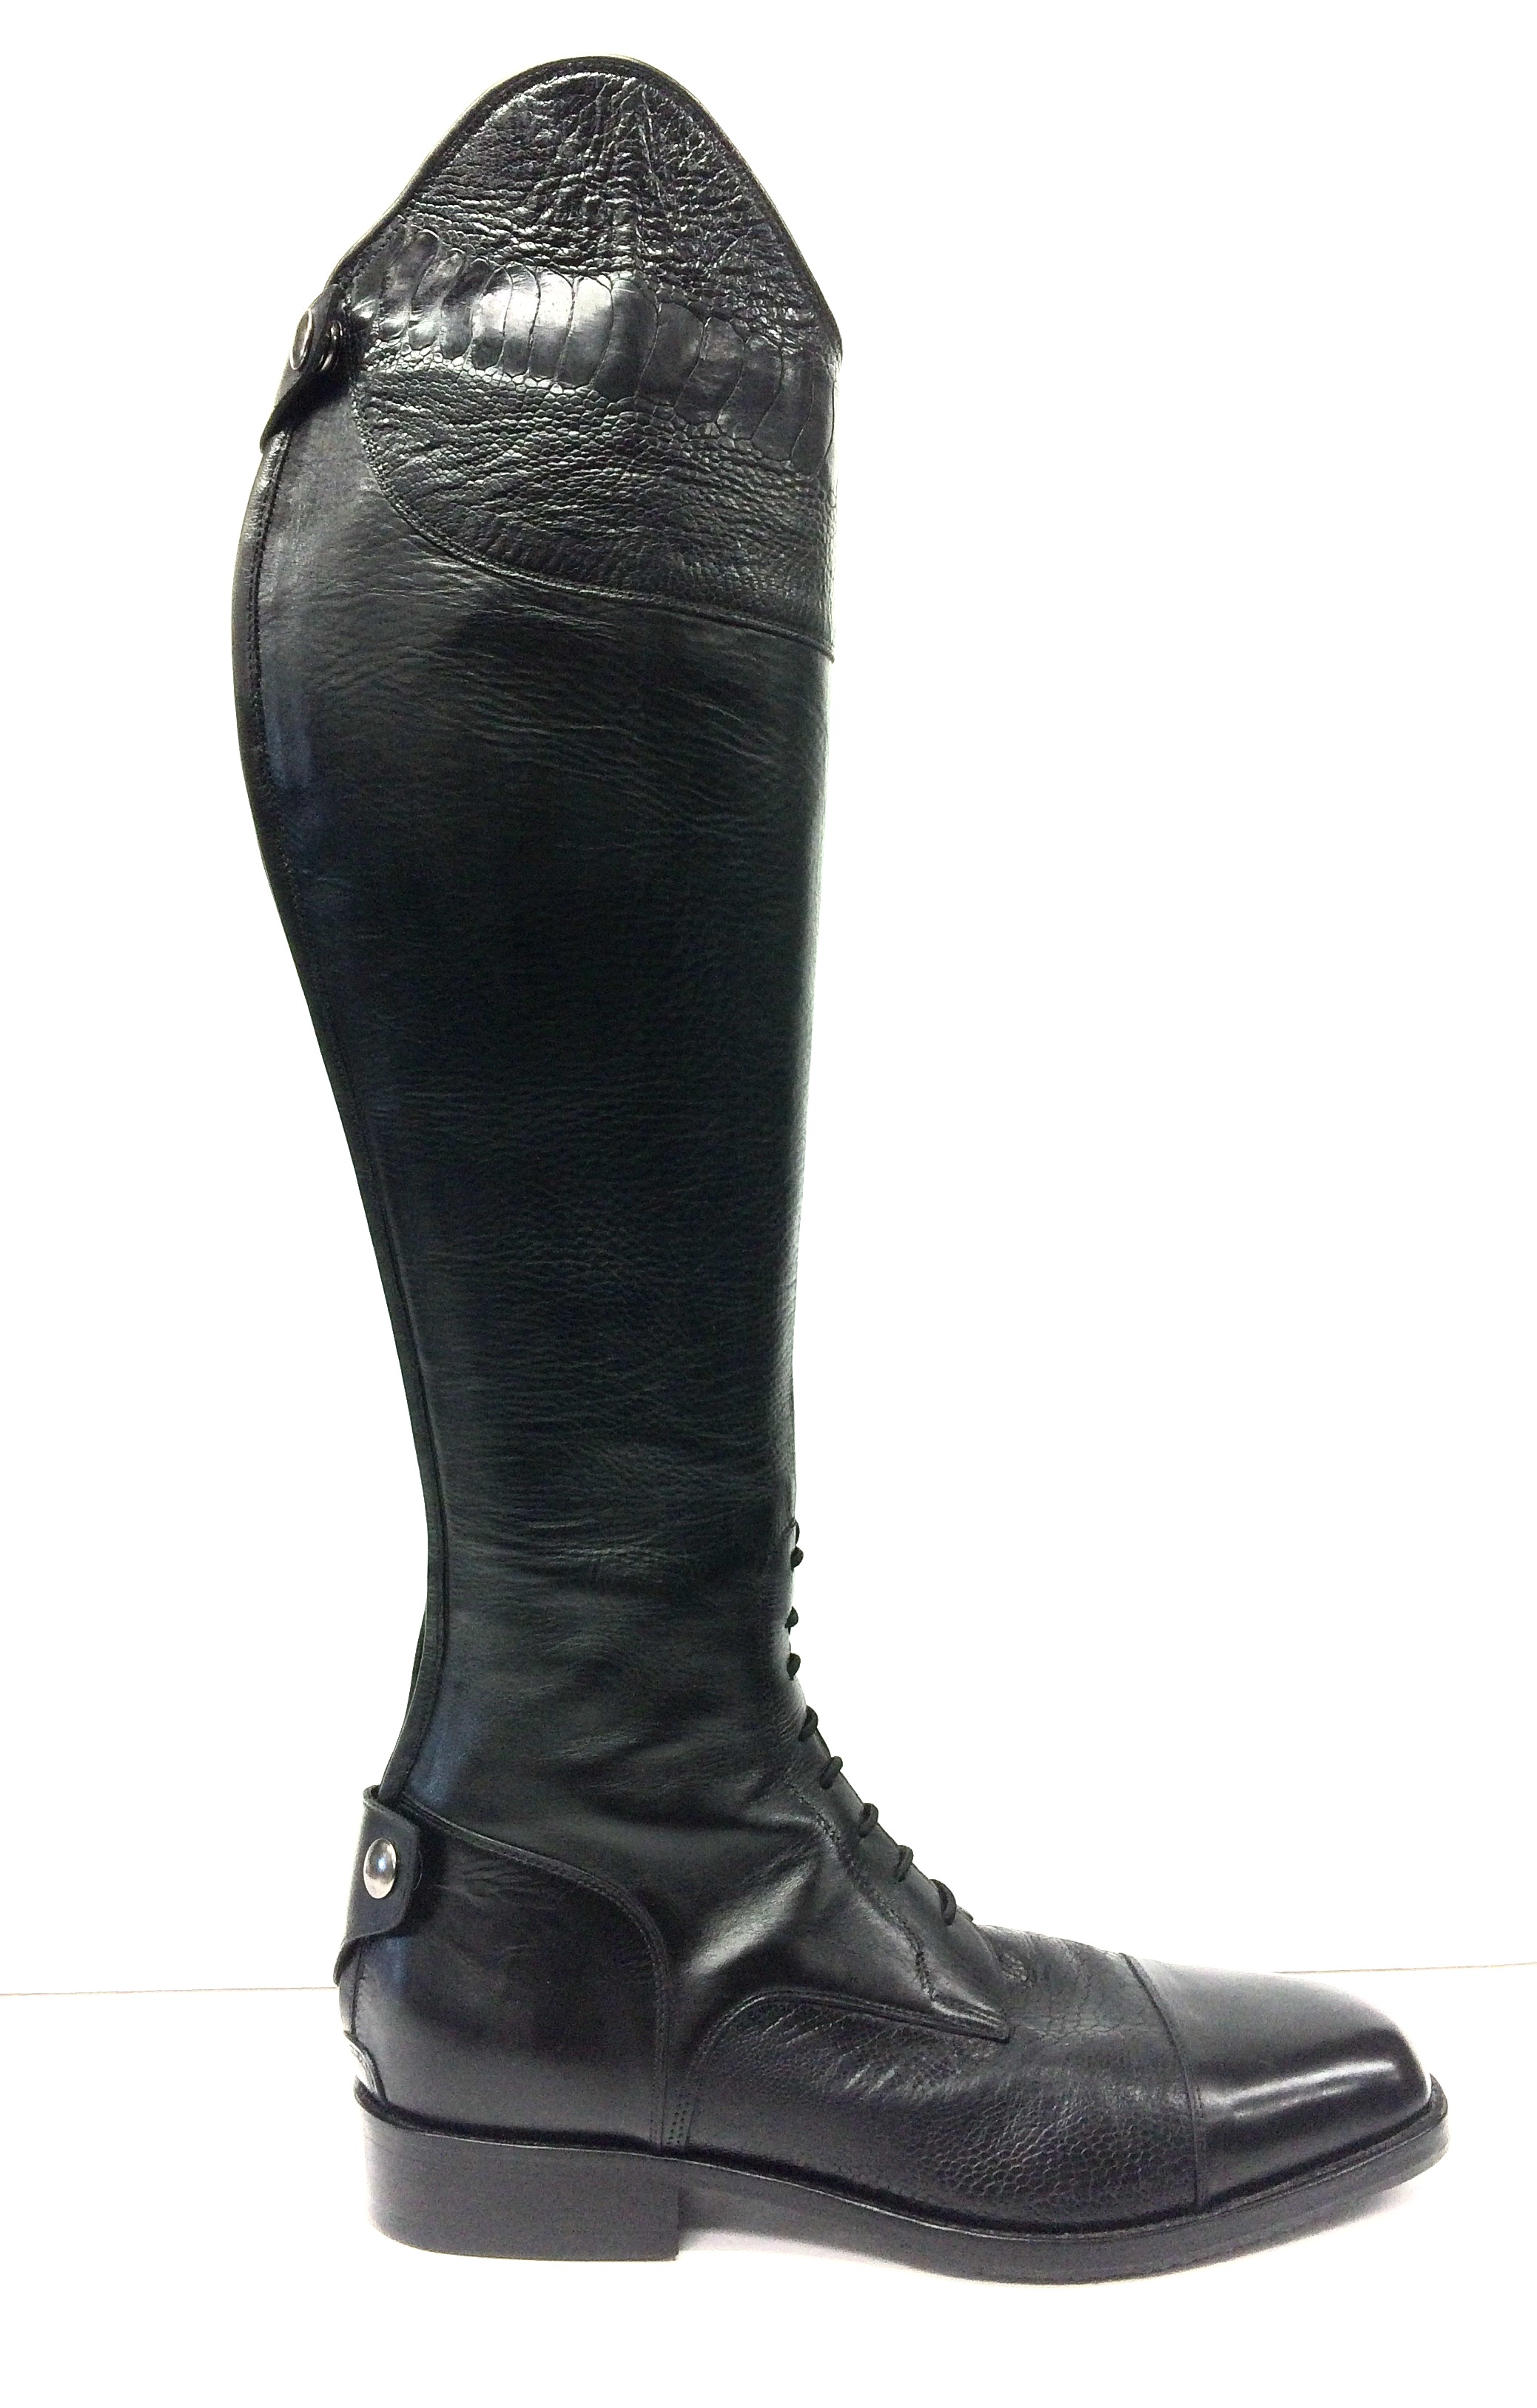 bdfe6bfca026 Bespoke Stallions Leather & Ostrich Leg Riding Boots — Andre No. 1 ...